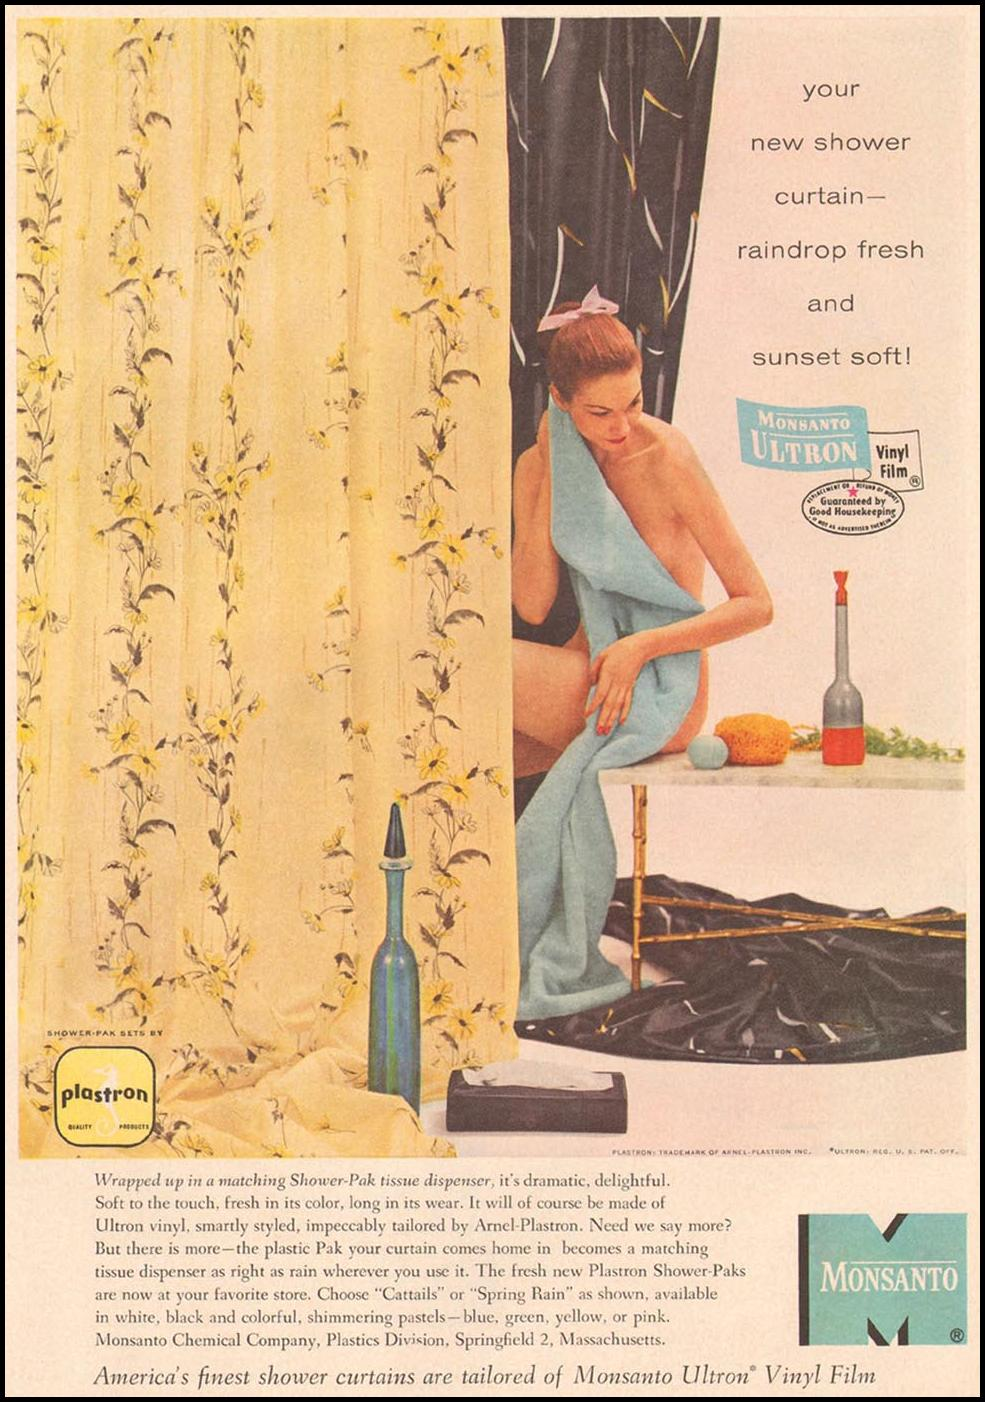 MONSANTO ULTRON VINYL FILM GOOD HOUSEKEEPING 05/01/1957 p. 203